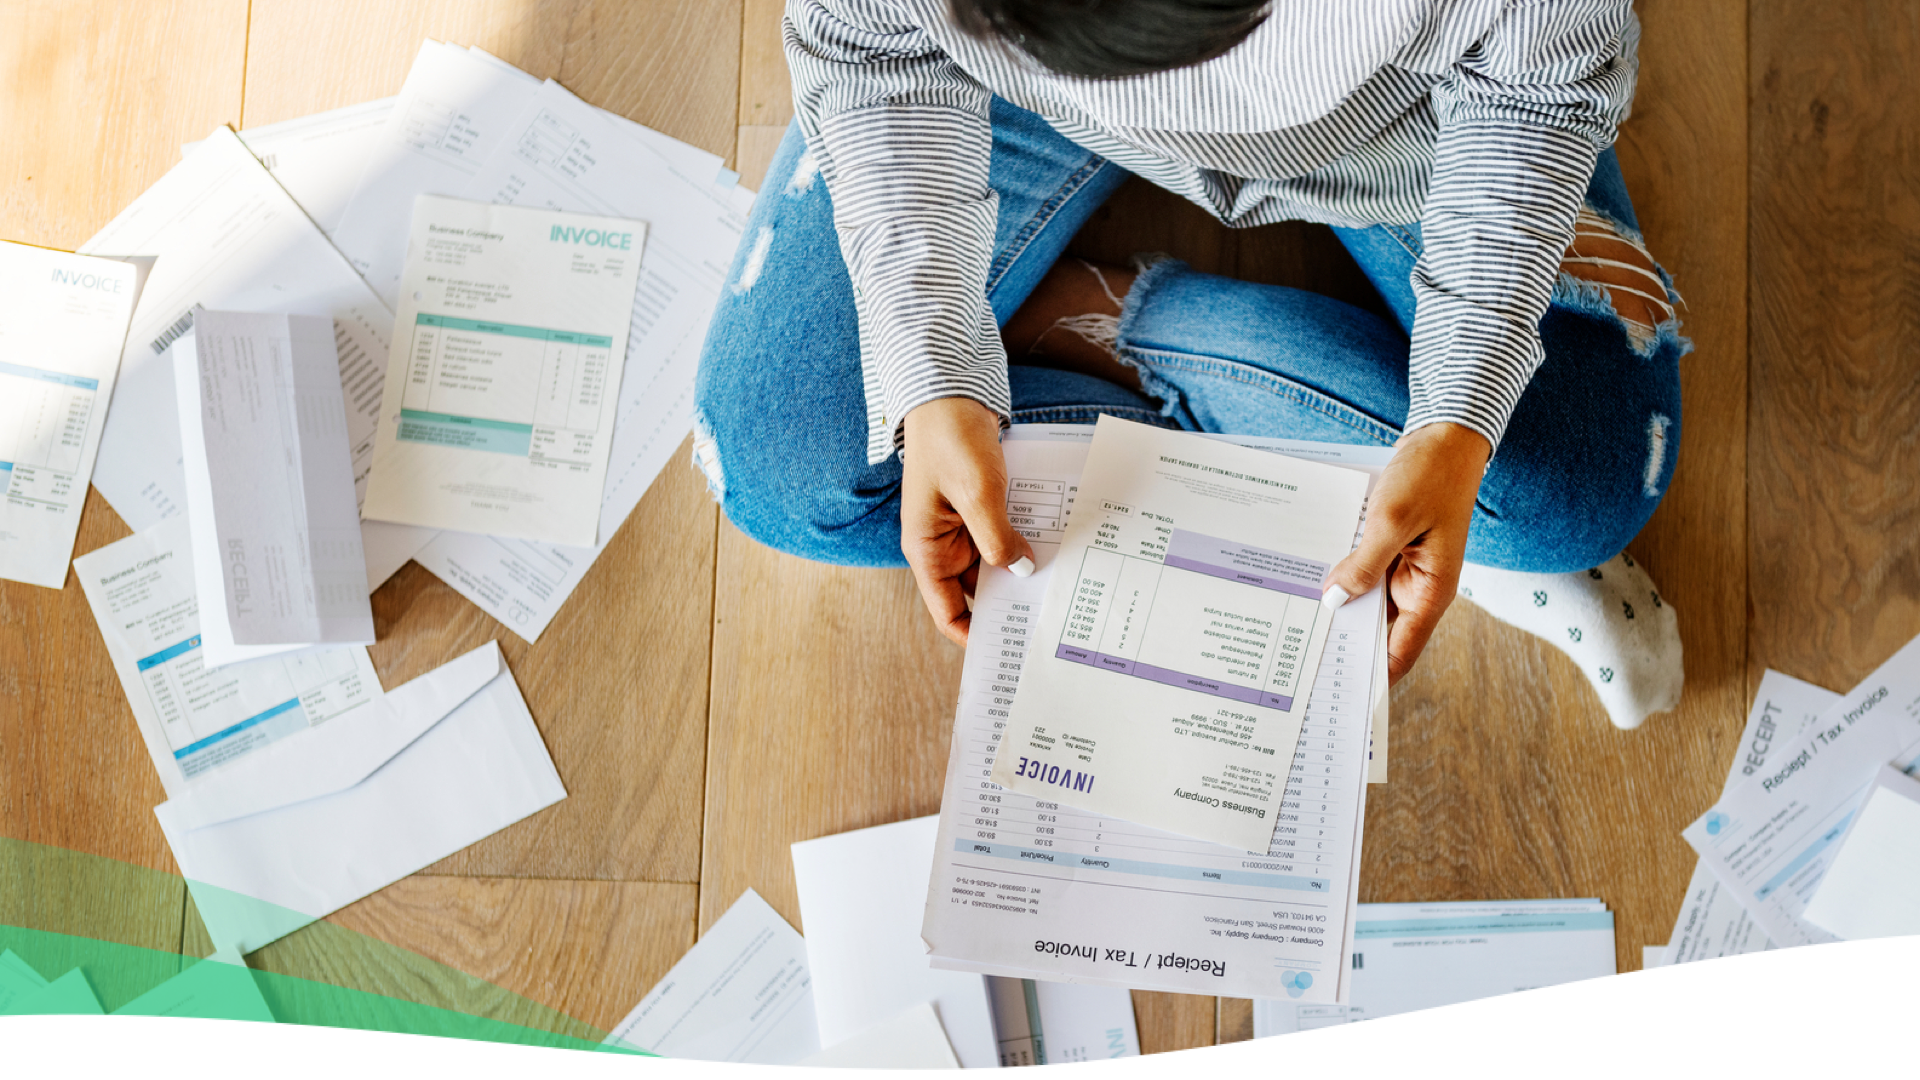 Blog ML Mistakes to avoid when tackling debt 01142019 1